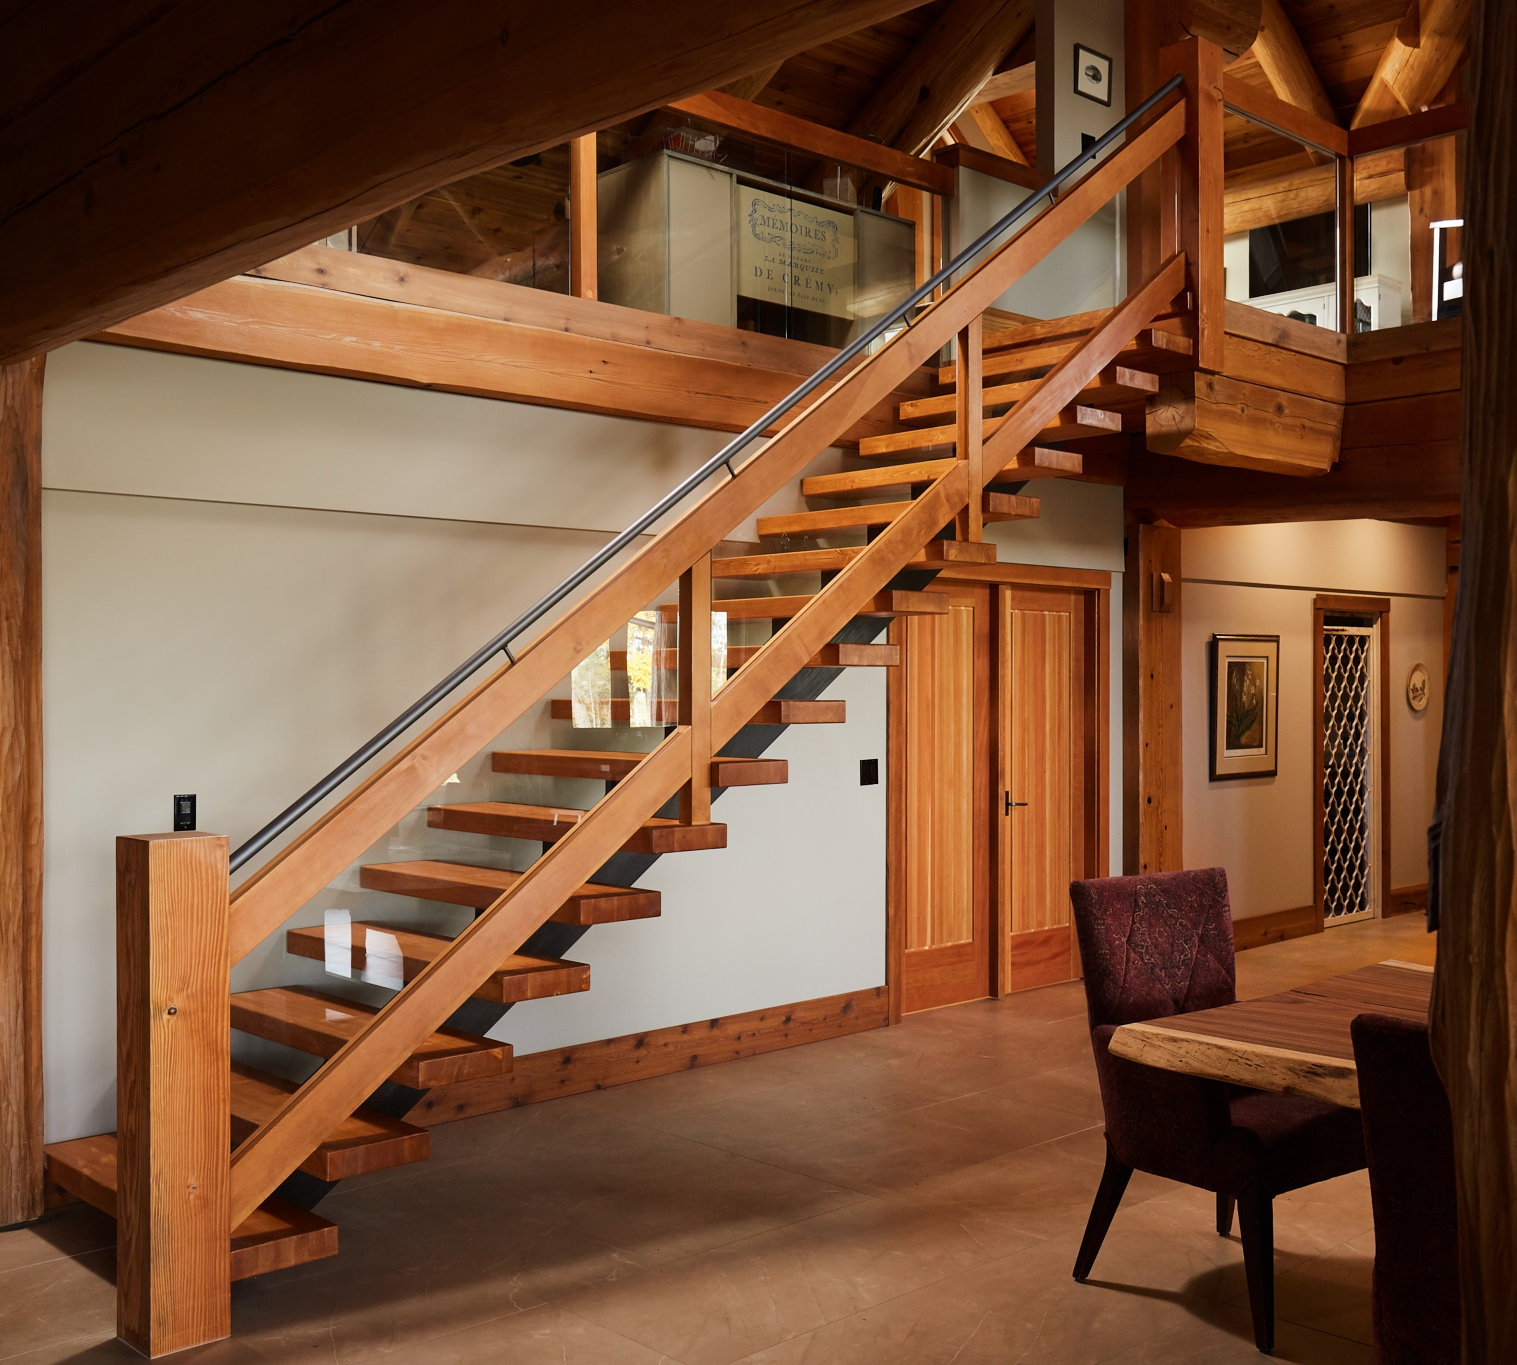 Rustic Oak And Fir Specialized Stair Rail   Rustic Banisters And Railings   Industrial   Unusual   Balcony   Custom   Barn Style